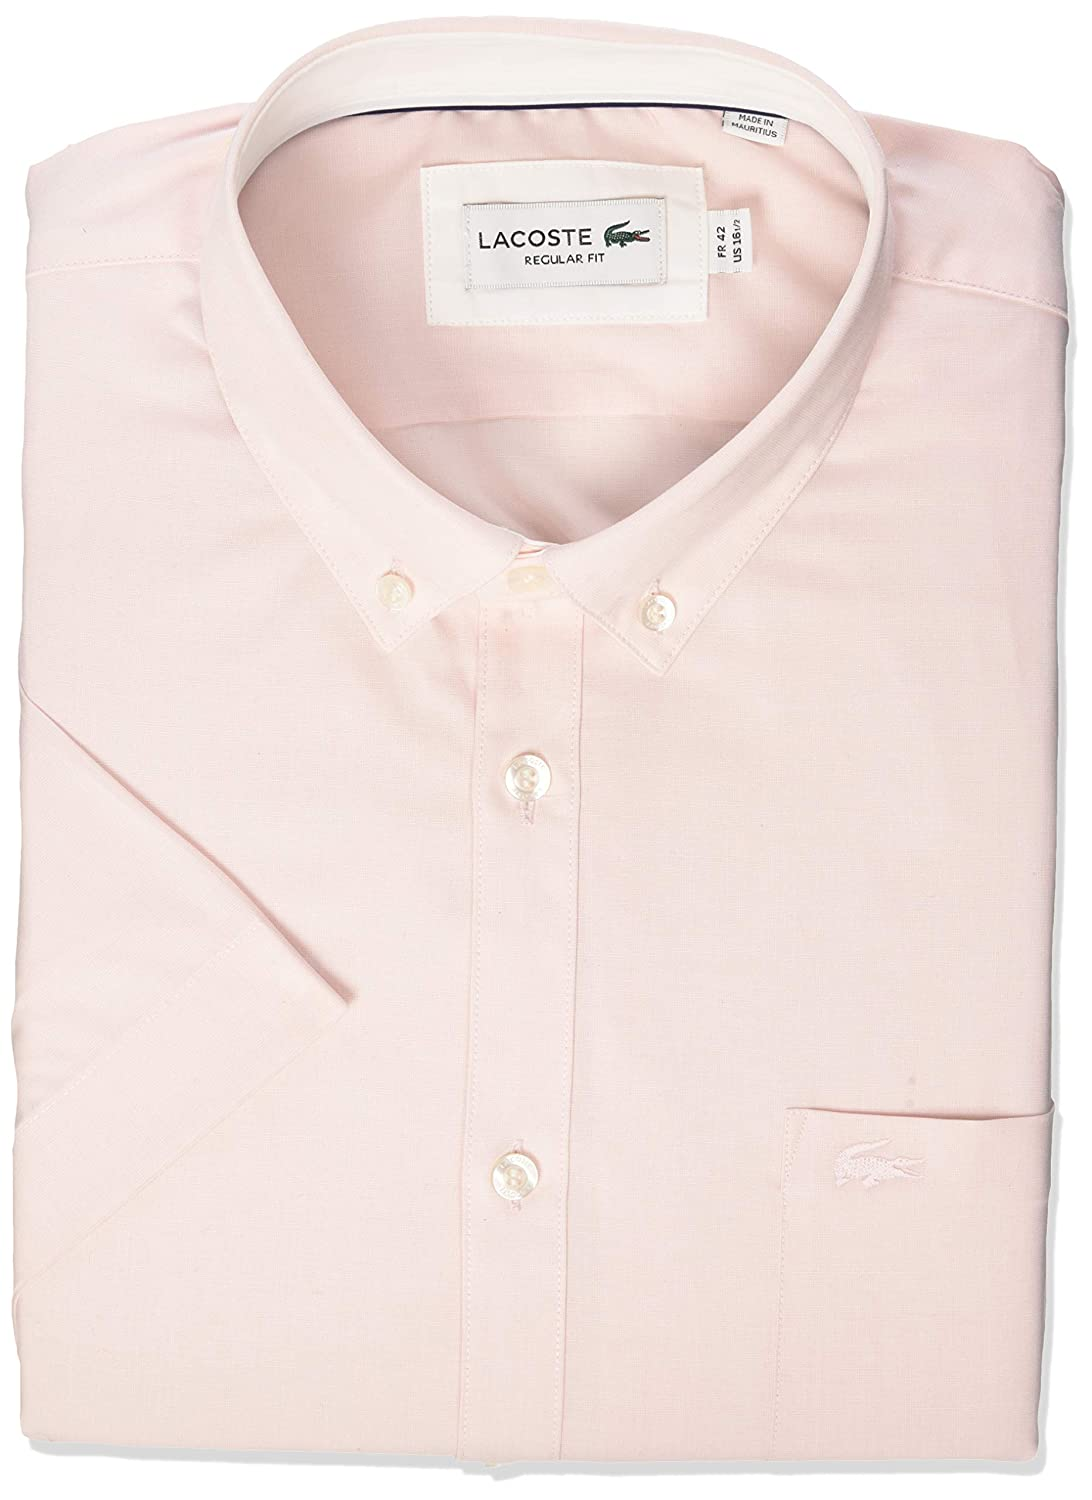 Lacoste Mens S//S Button Down Collar Regular Fit City Woven Shirt